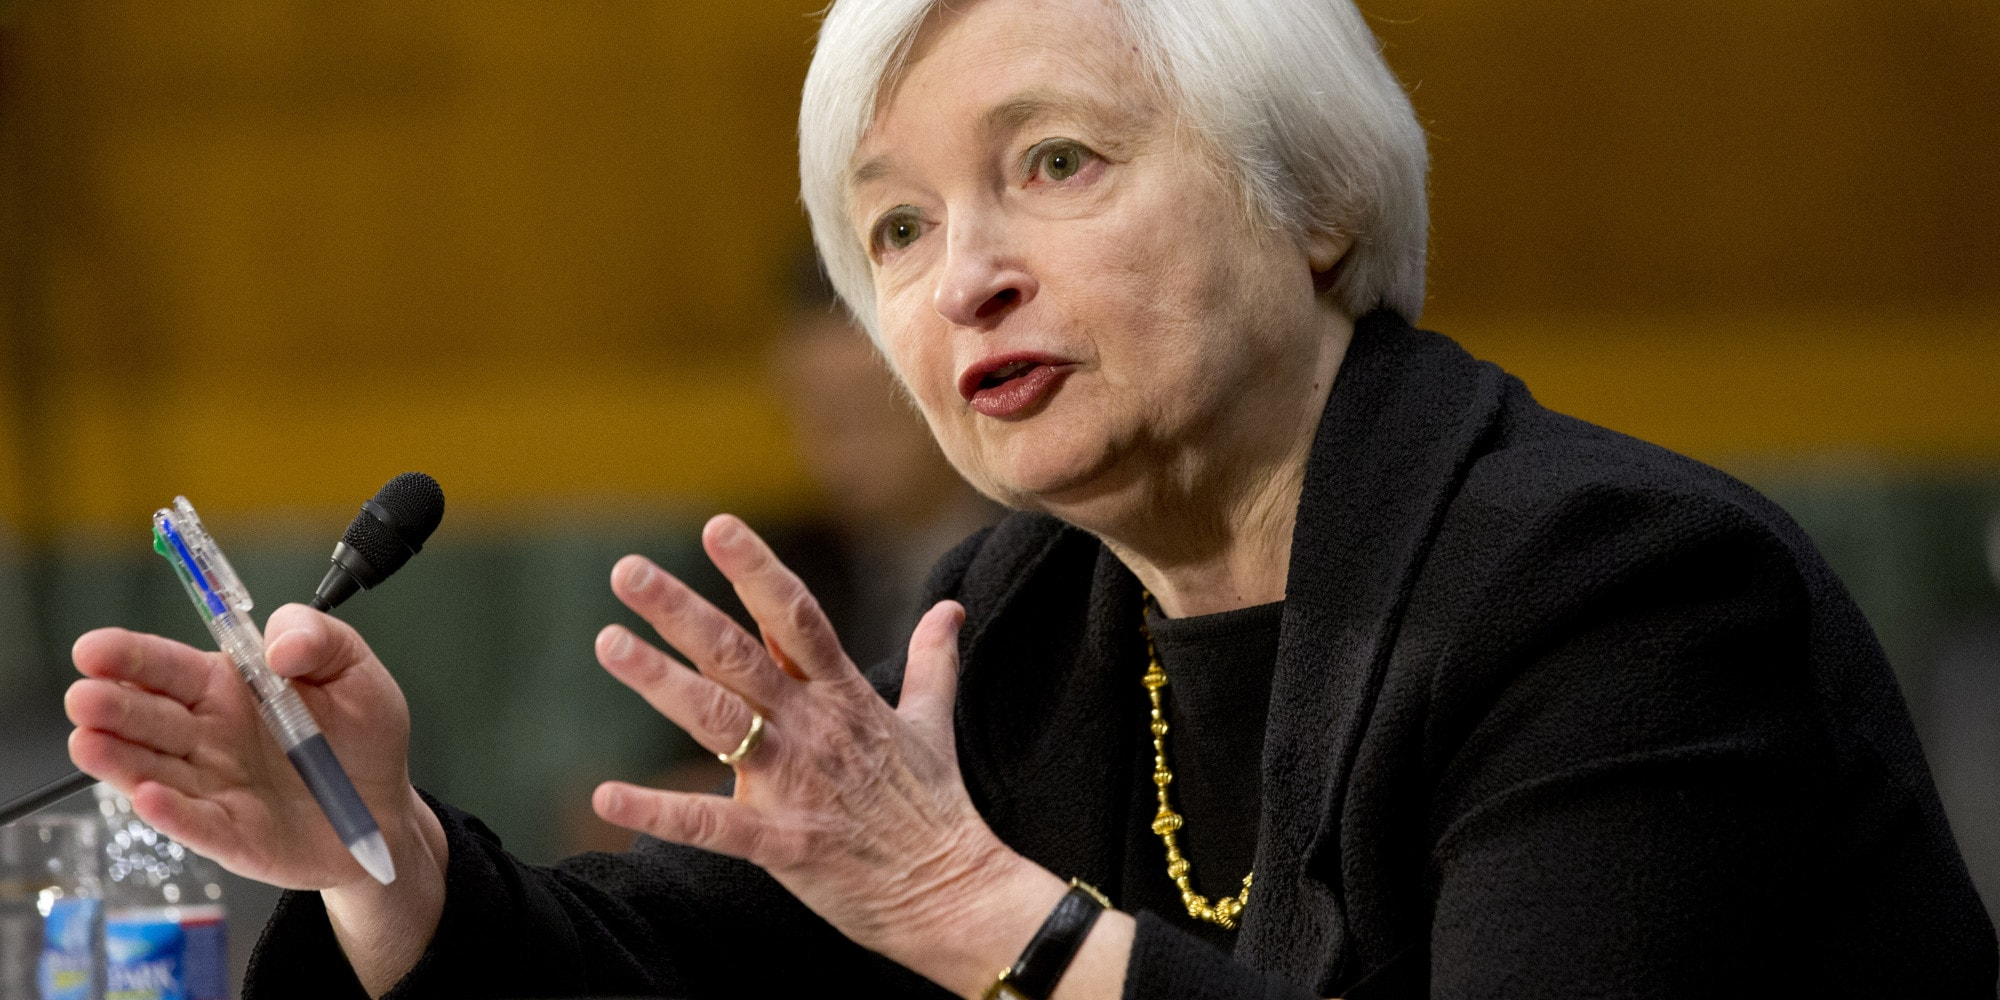 Janet Yellen, of California, President Barack Obama's nominee to become Federal Reserve Board chair, testifies on Capitol Hill in Washington, Thursday Nov. 14, 2013, before the Senate Banking Committee hearing on her nomination to succeed Ben Bernanke. (AP Photo/Jacquelyn Martin)